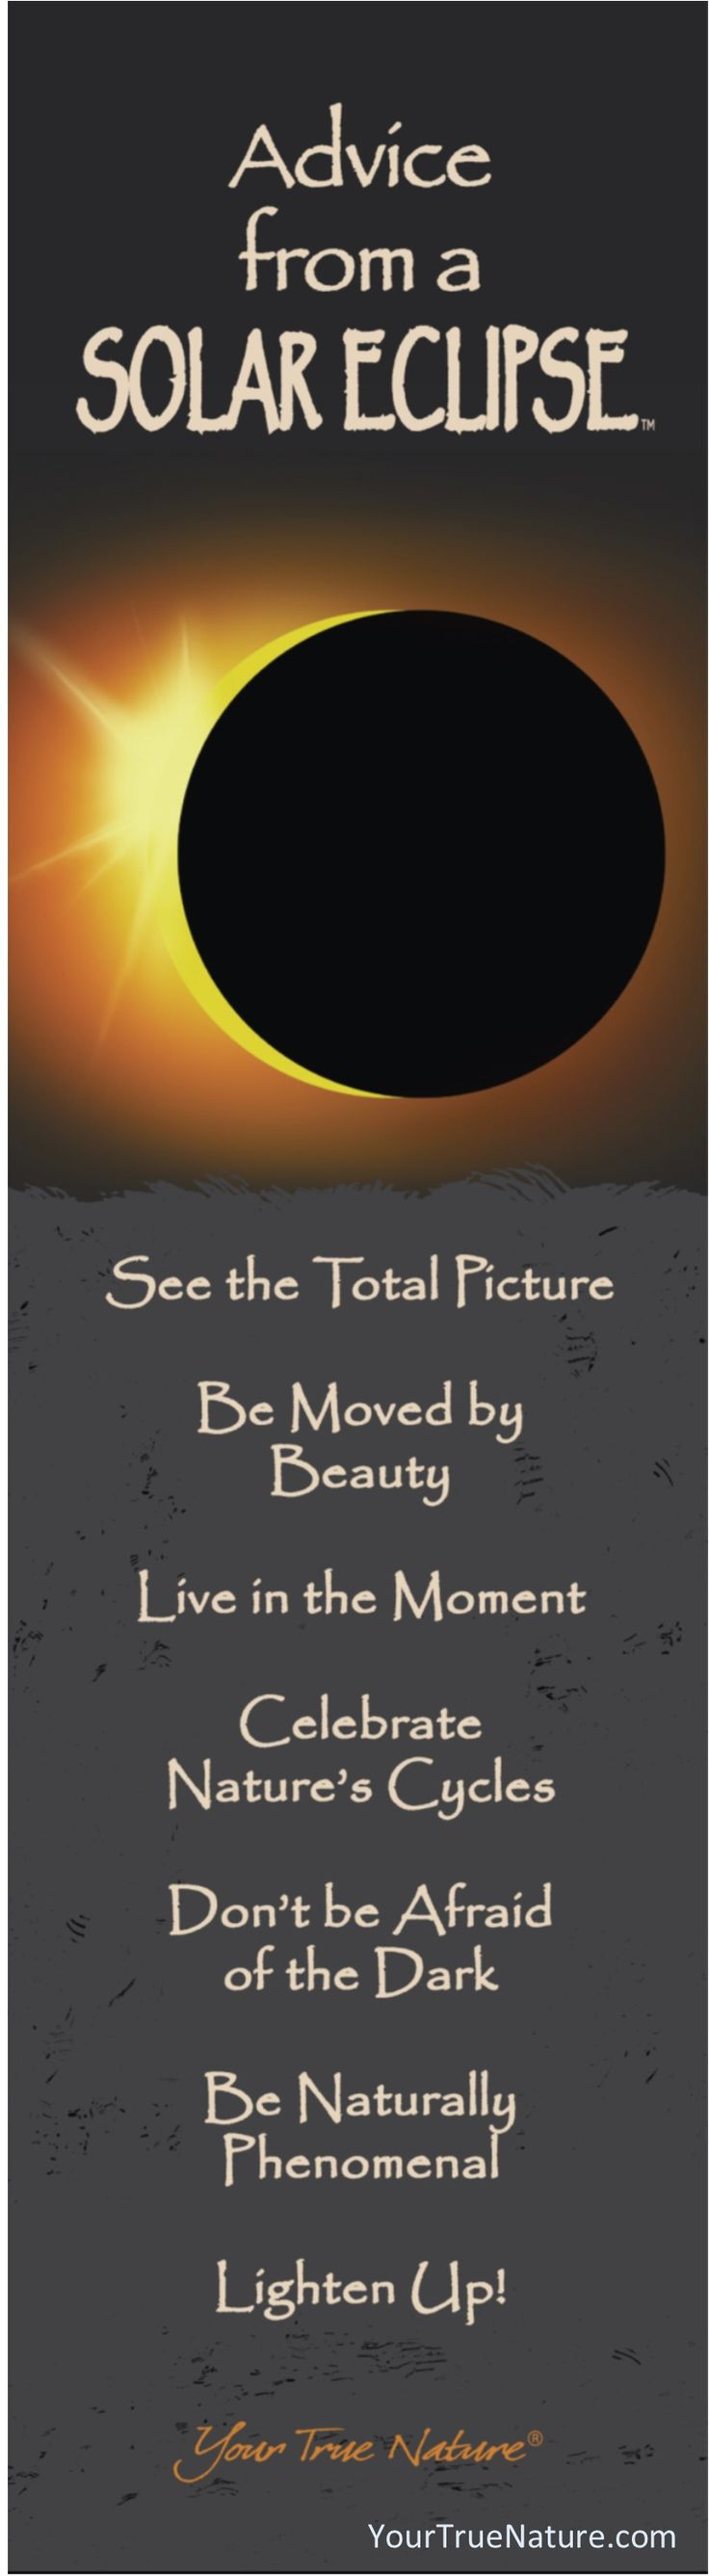 "Growth Advice from a Solar Eclipse: ""Don't be afraid of the dark."" Your True Nature"